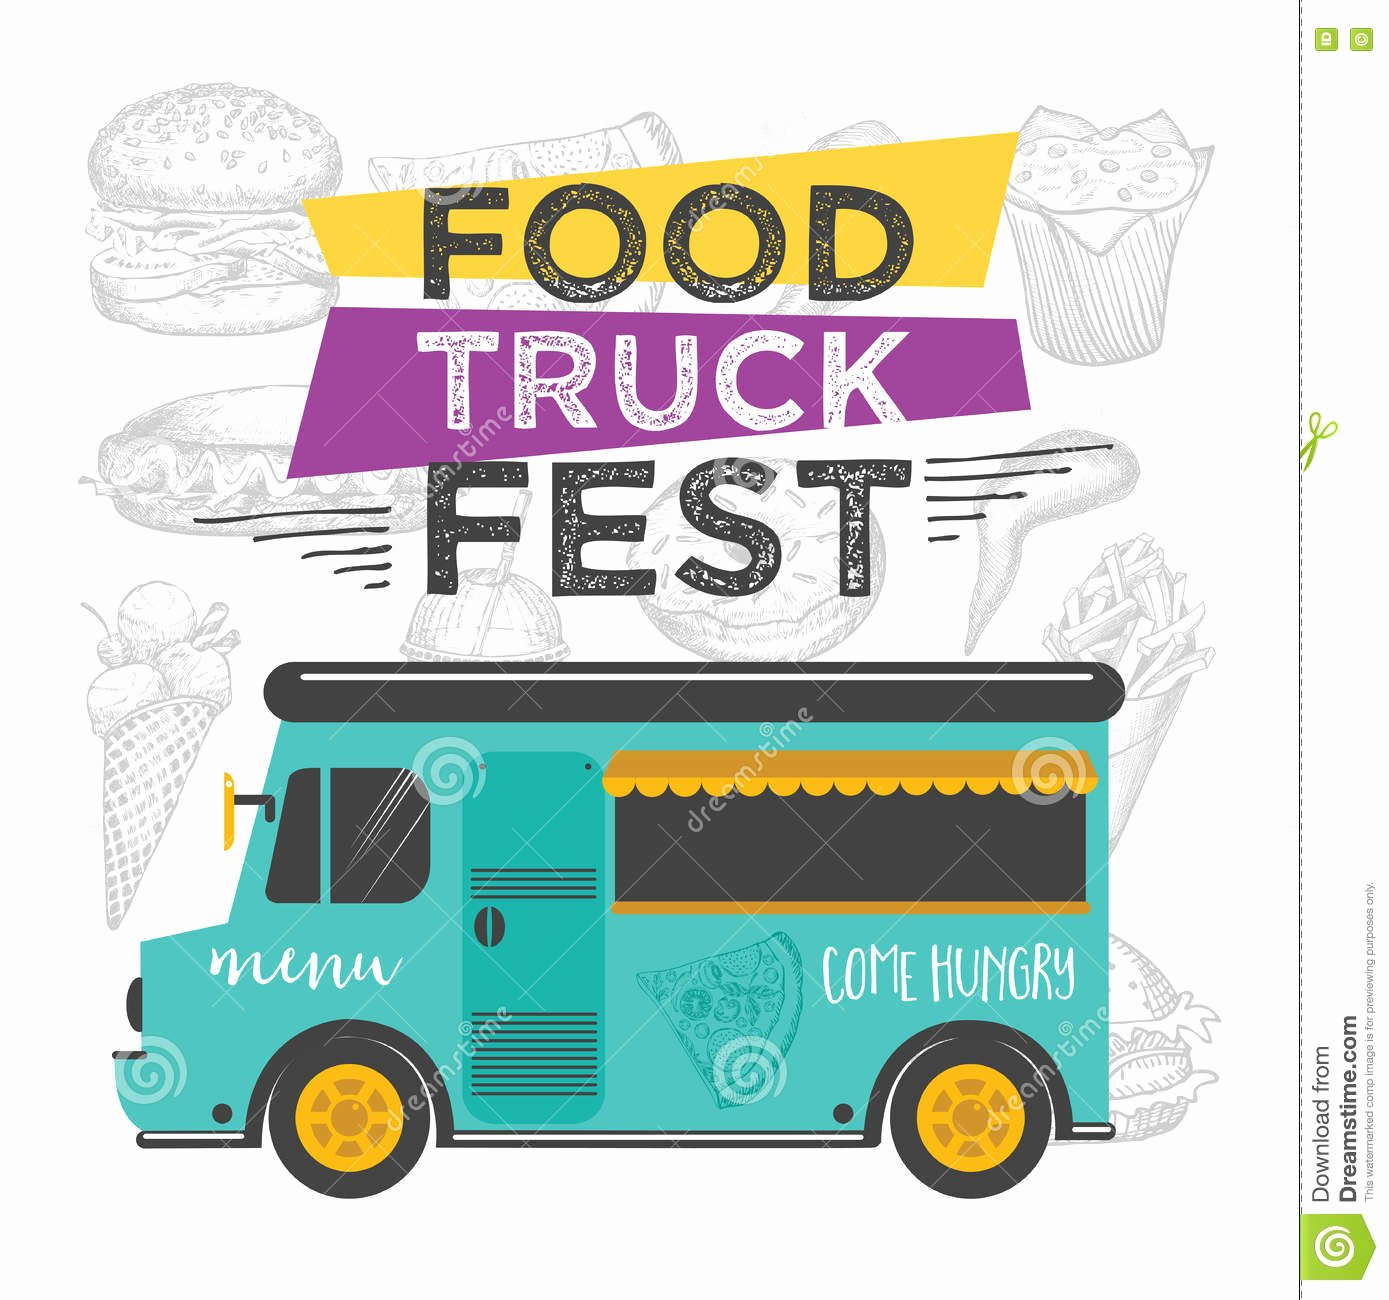 Food Truck Menu Template Beautiful Food Truck Party Invitation Food Menu Template Design Food Fly Stock Vector Image